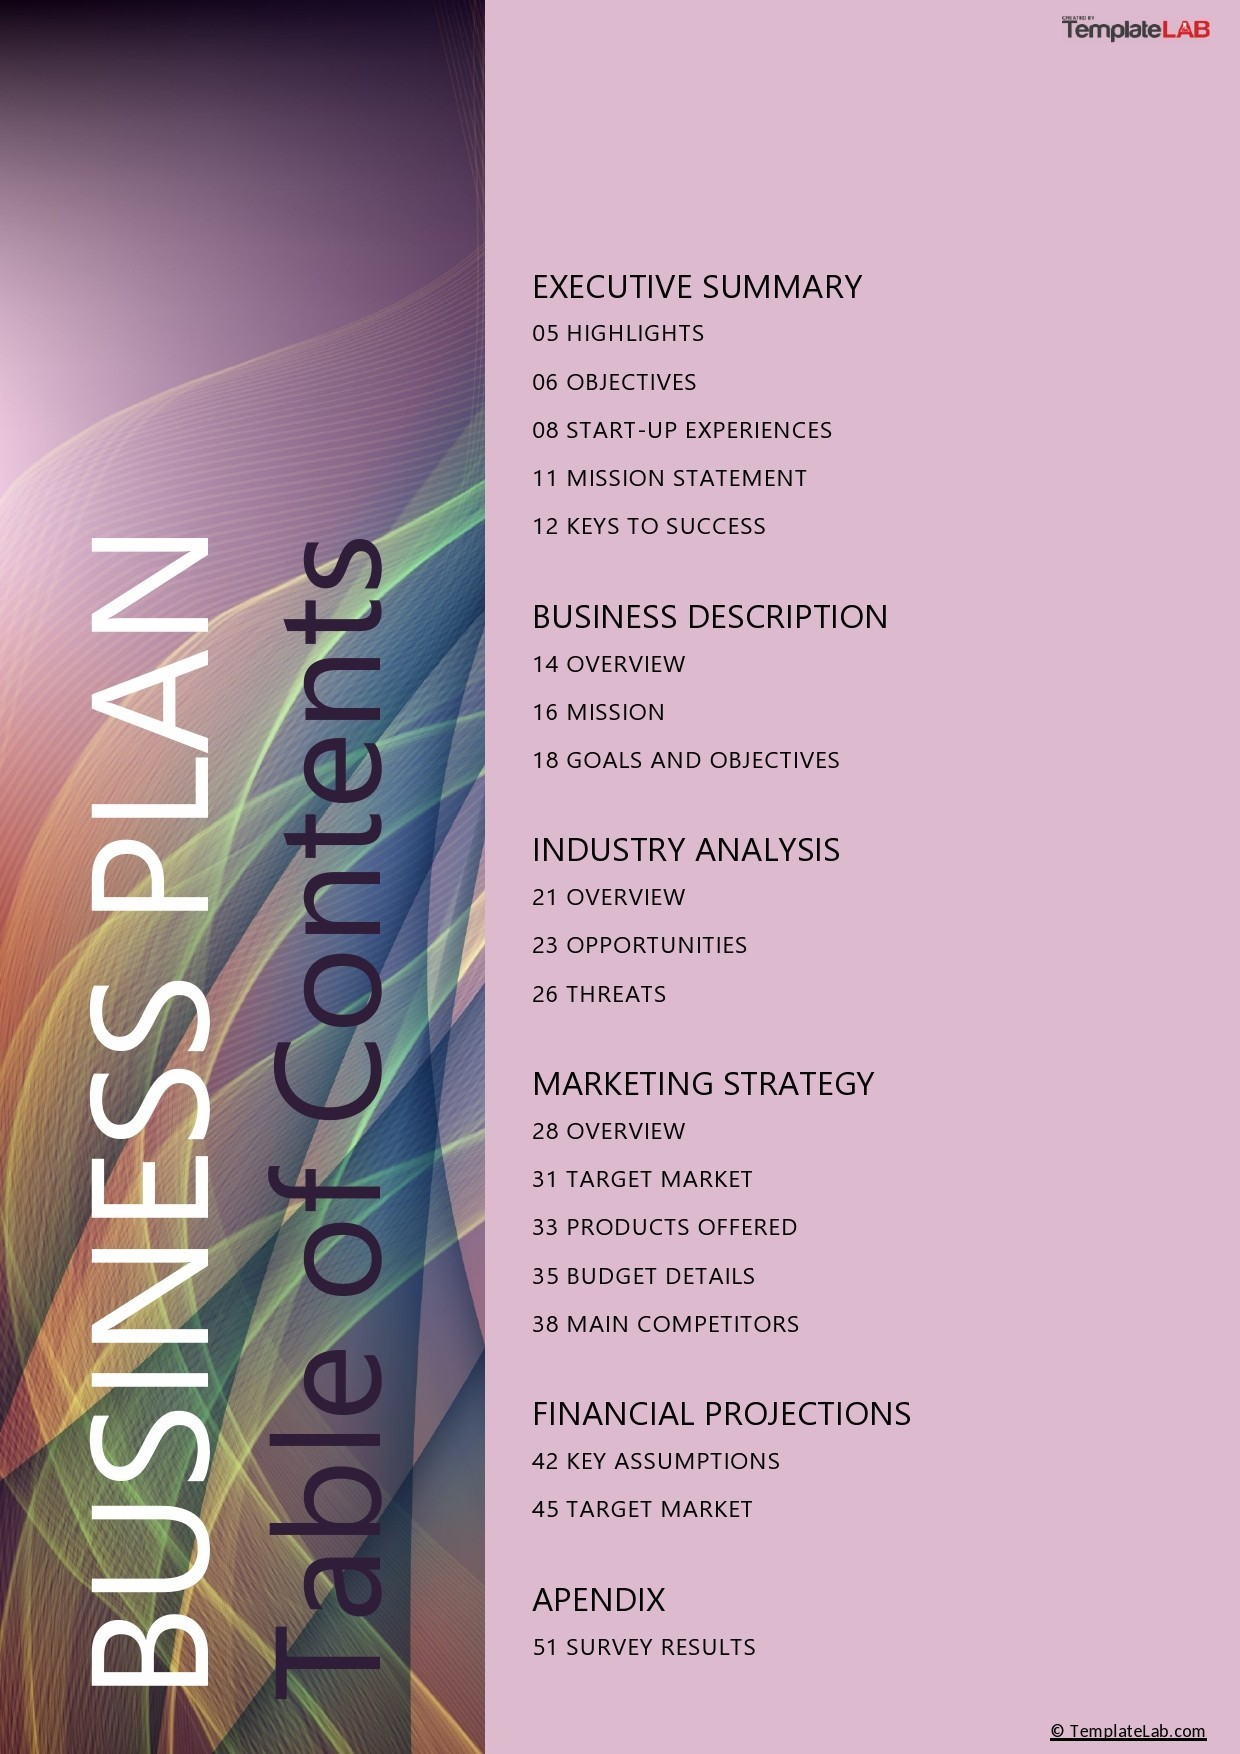 Free Business Plan Table of Contents - TemplateLab.com